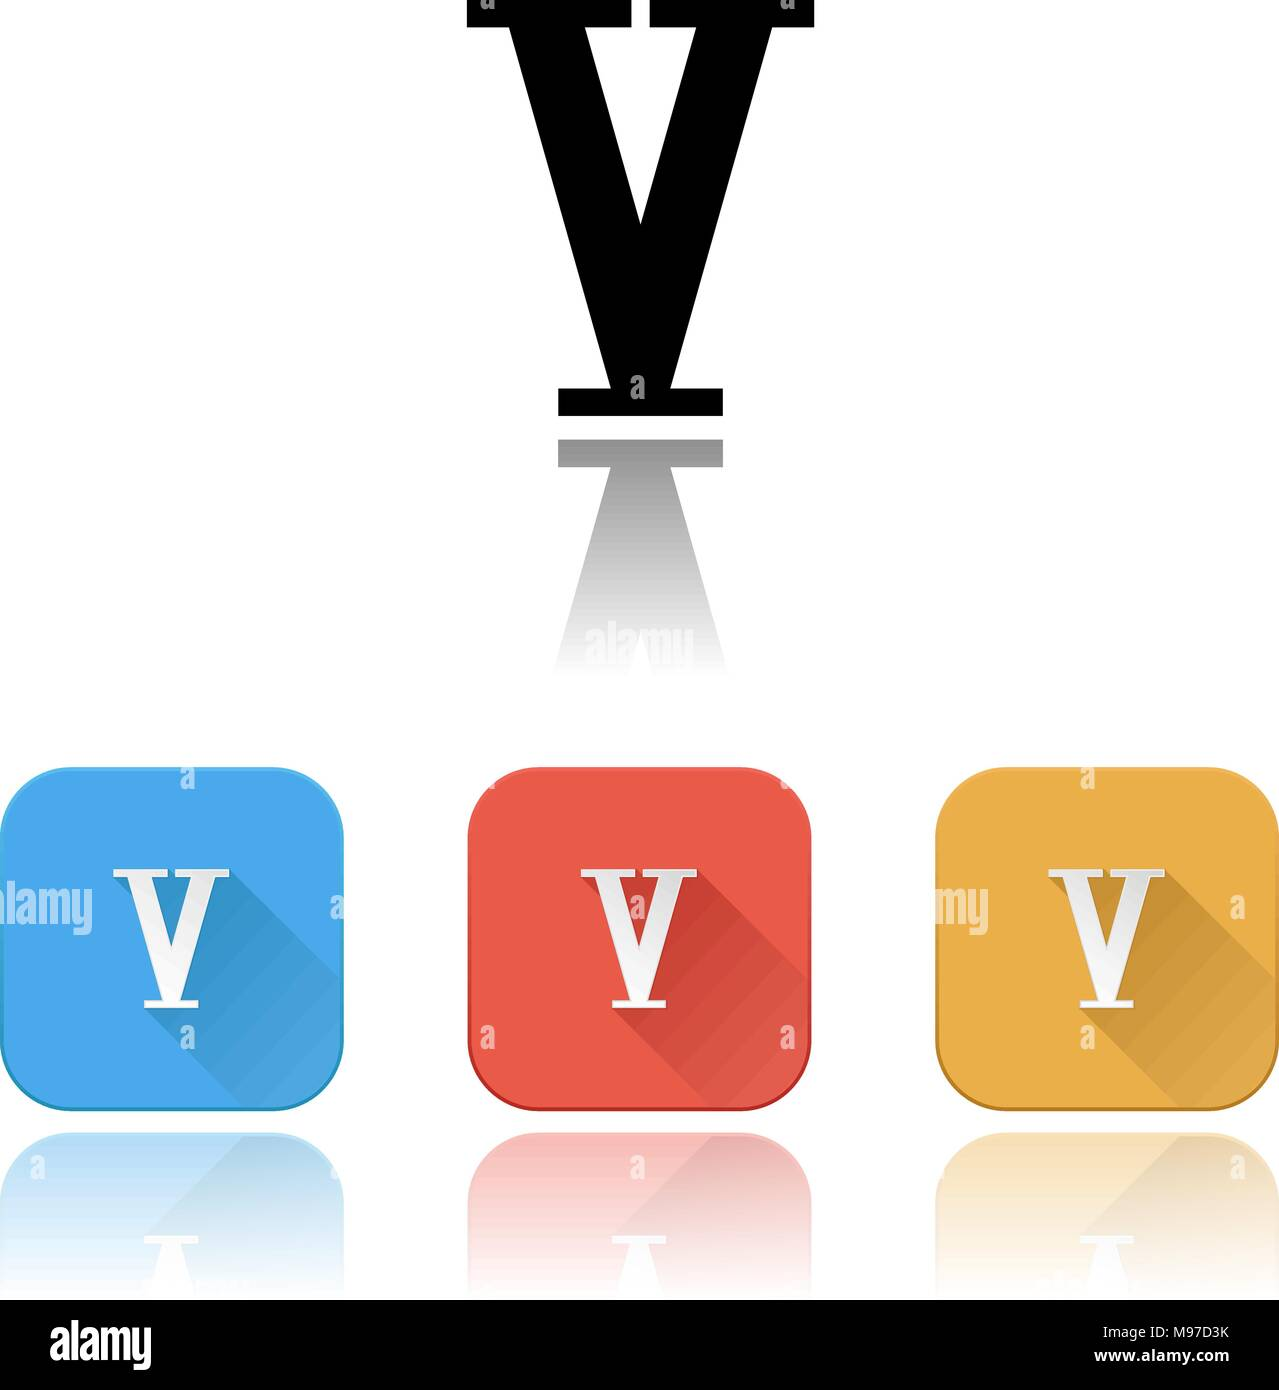 V roman numeral icons. Colored set with reflection - Stock Image